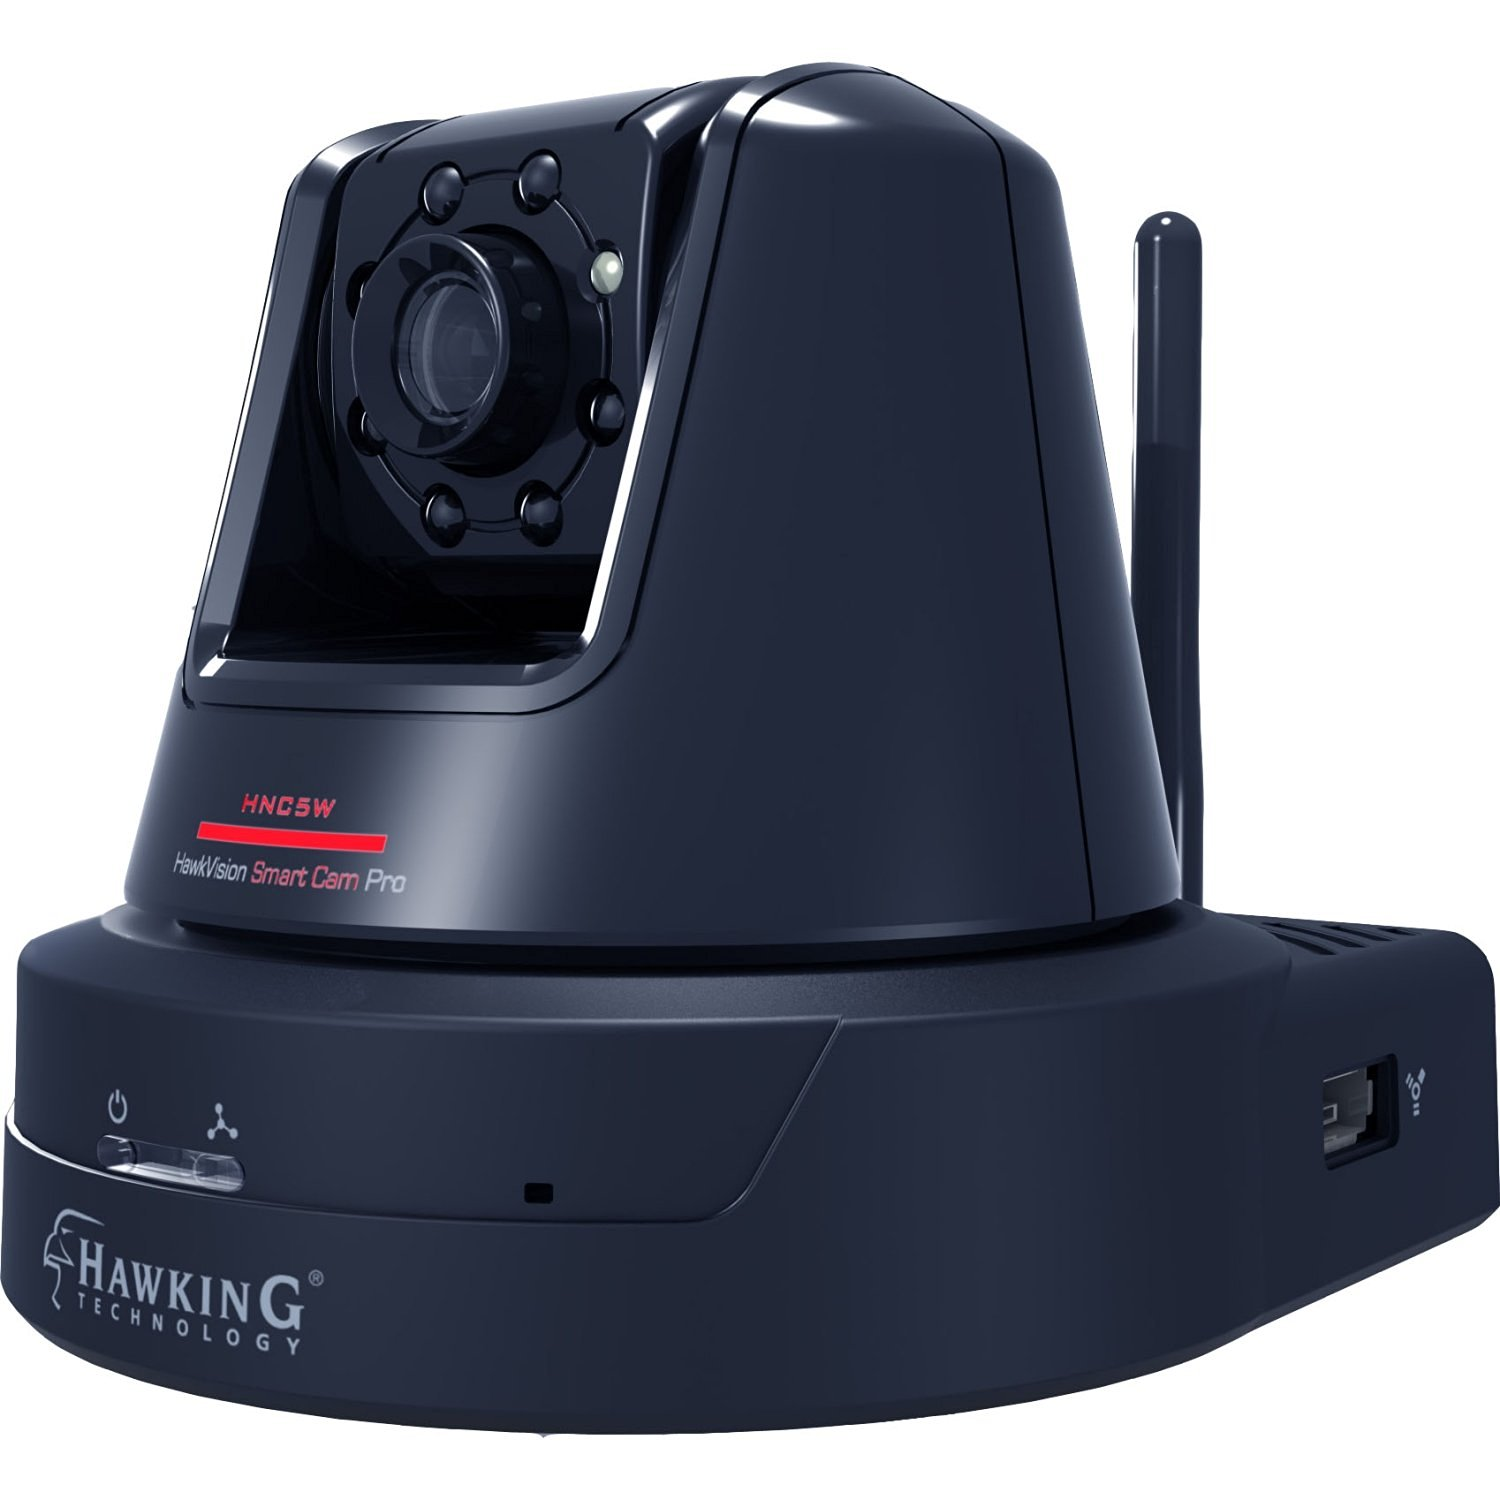 Hawking HawkVision HNC5W Network Camera - Color - Board Mount - 1280 x 1024 - CMOS - Wireless, Cable - Wi-Fi - Fast Ethernet - USB - HNC5W